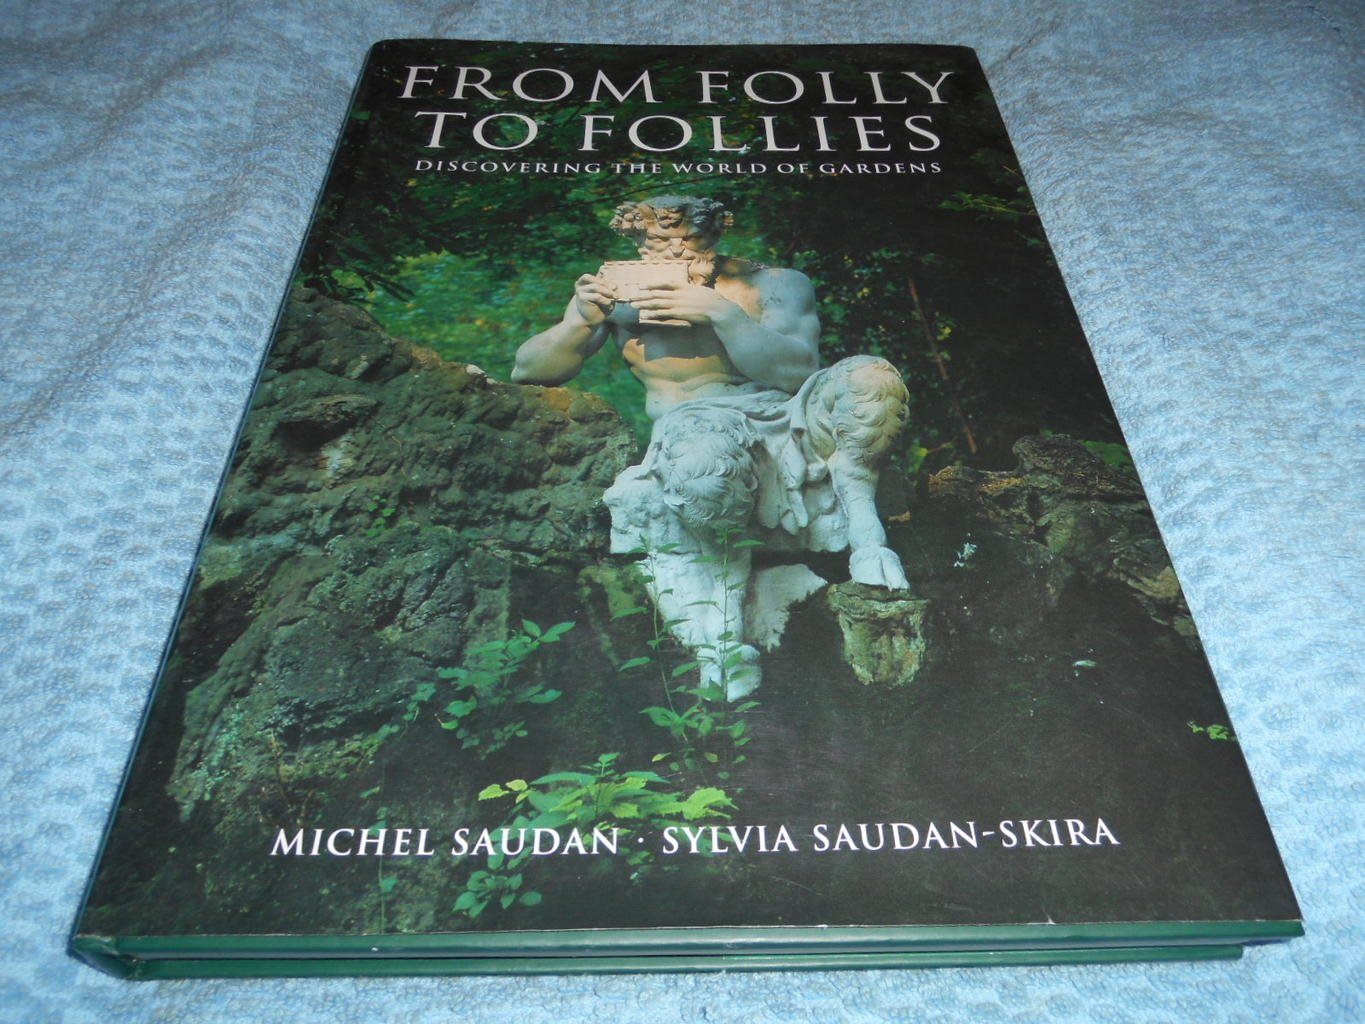 From Folly To Follies - Discovering The World Of Gardens